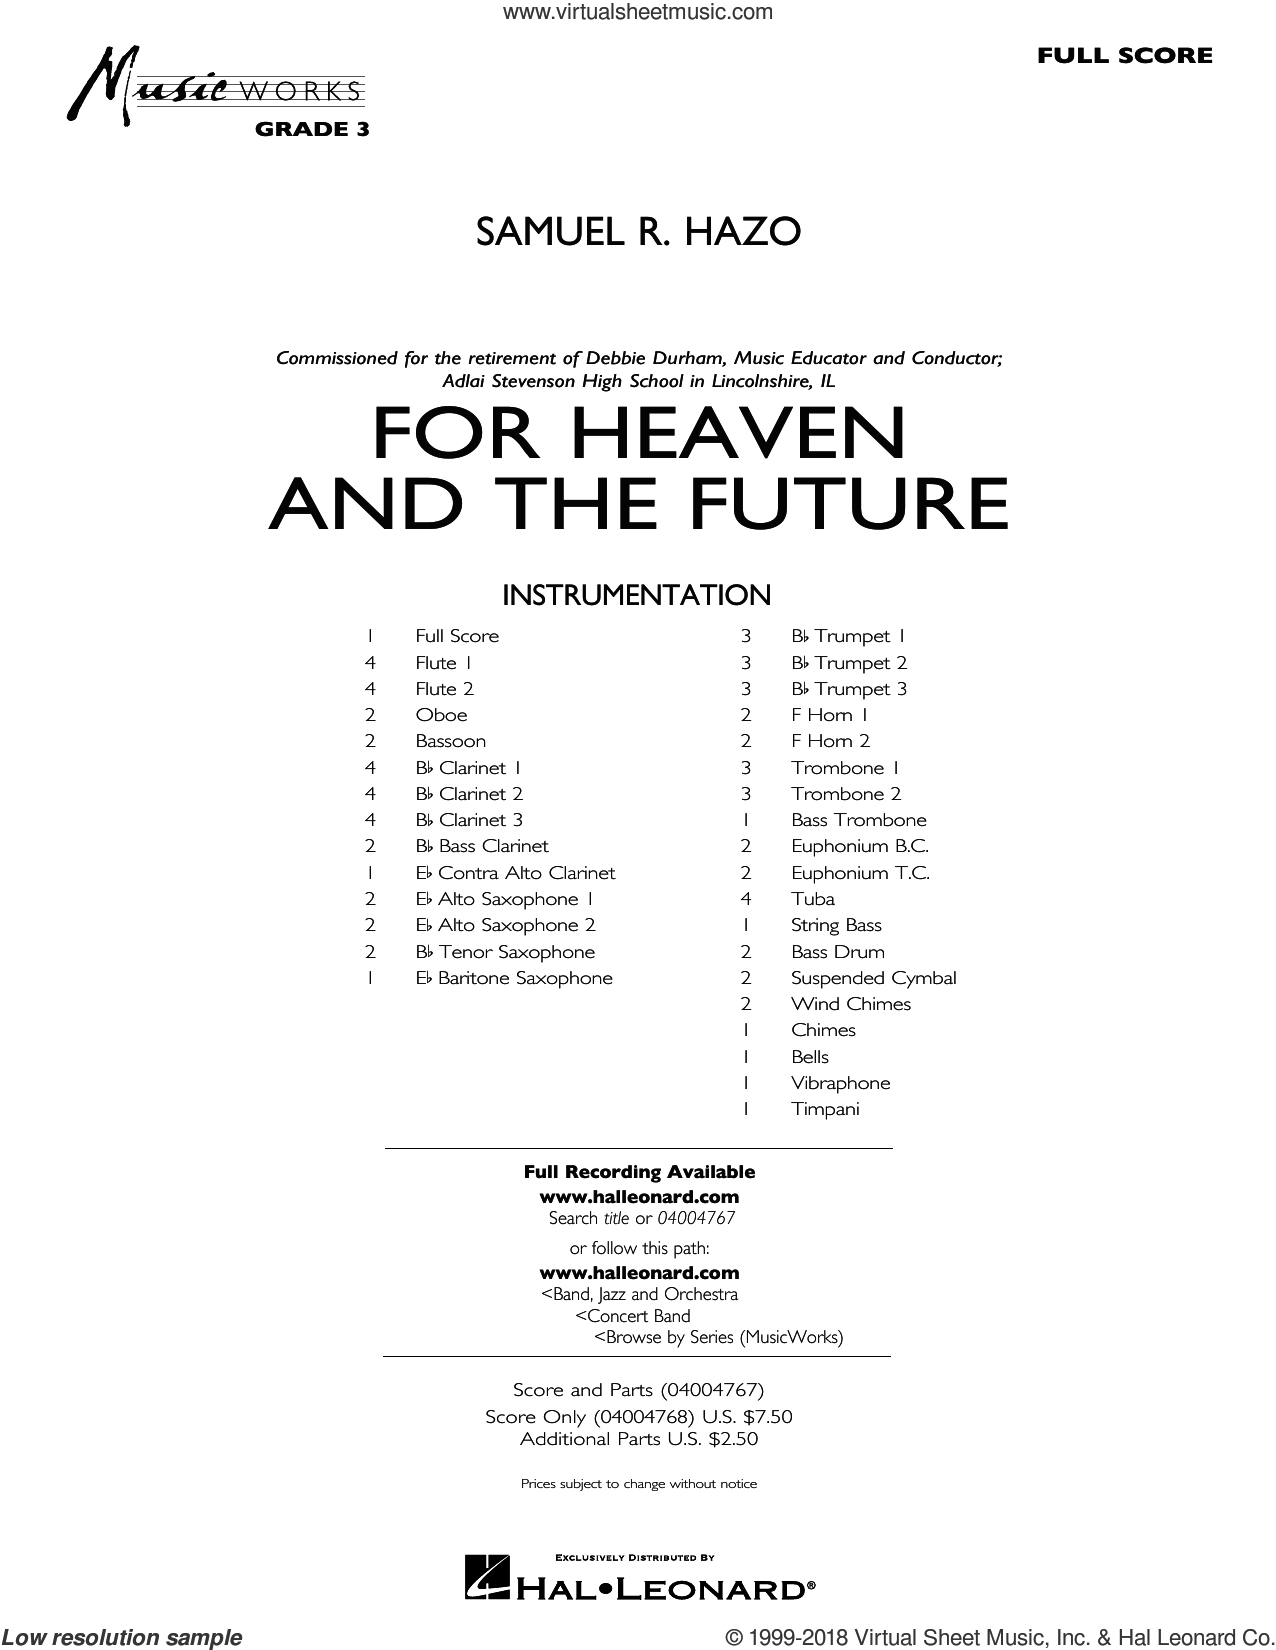 Hazo - For Heaven and the Future sheet music (complete collection) for  concert band